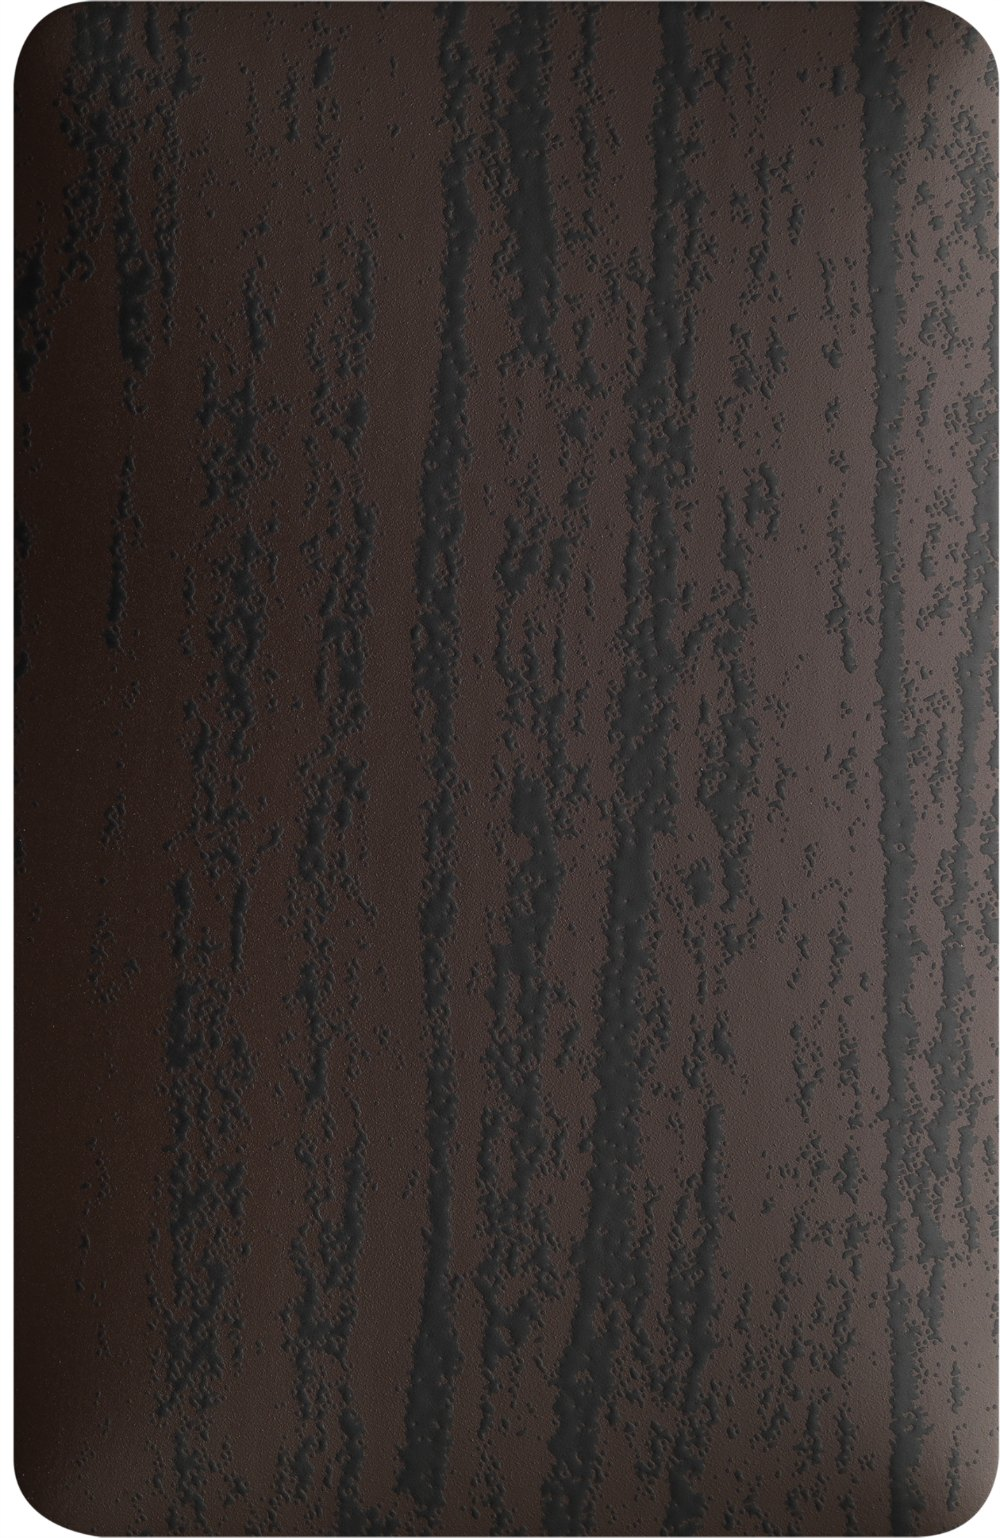 ECP PVDF Wood Dark Oak